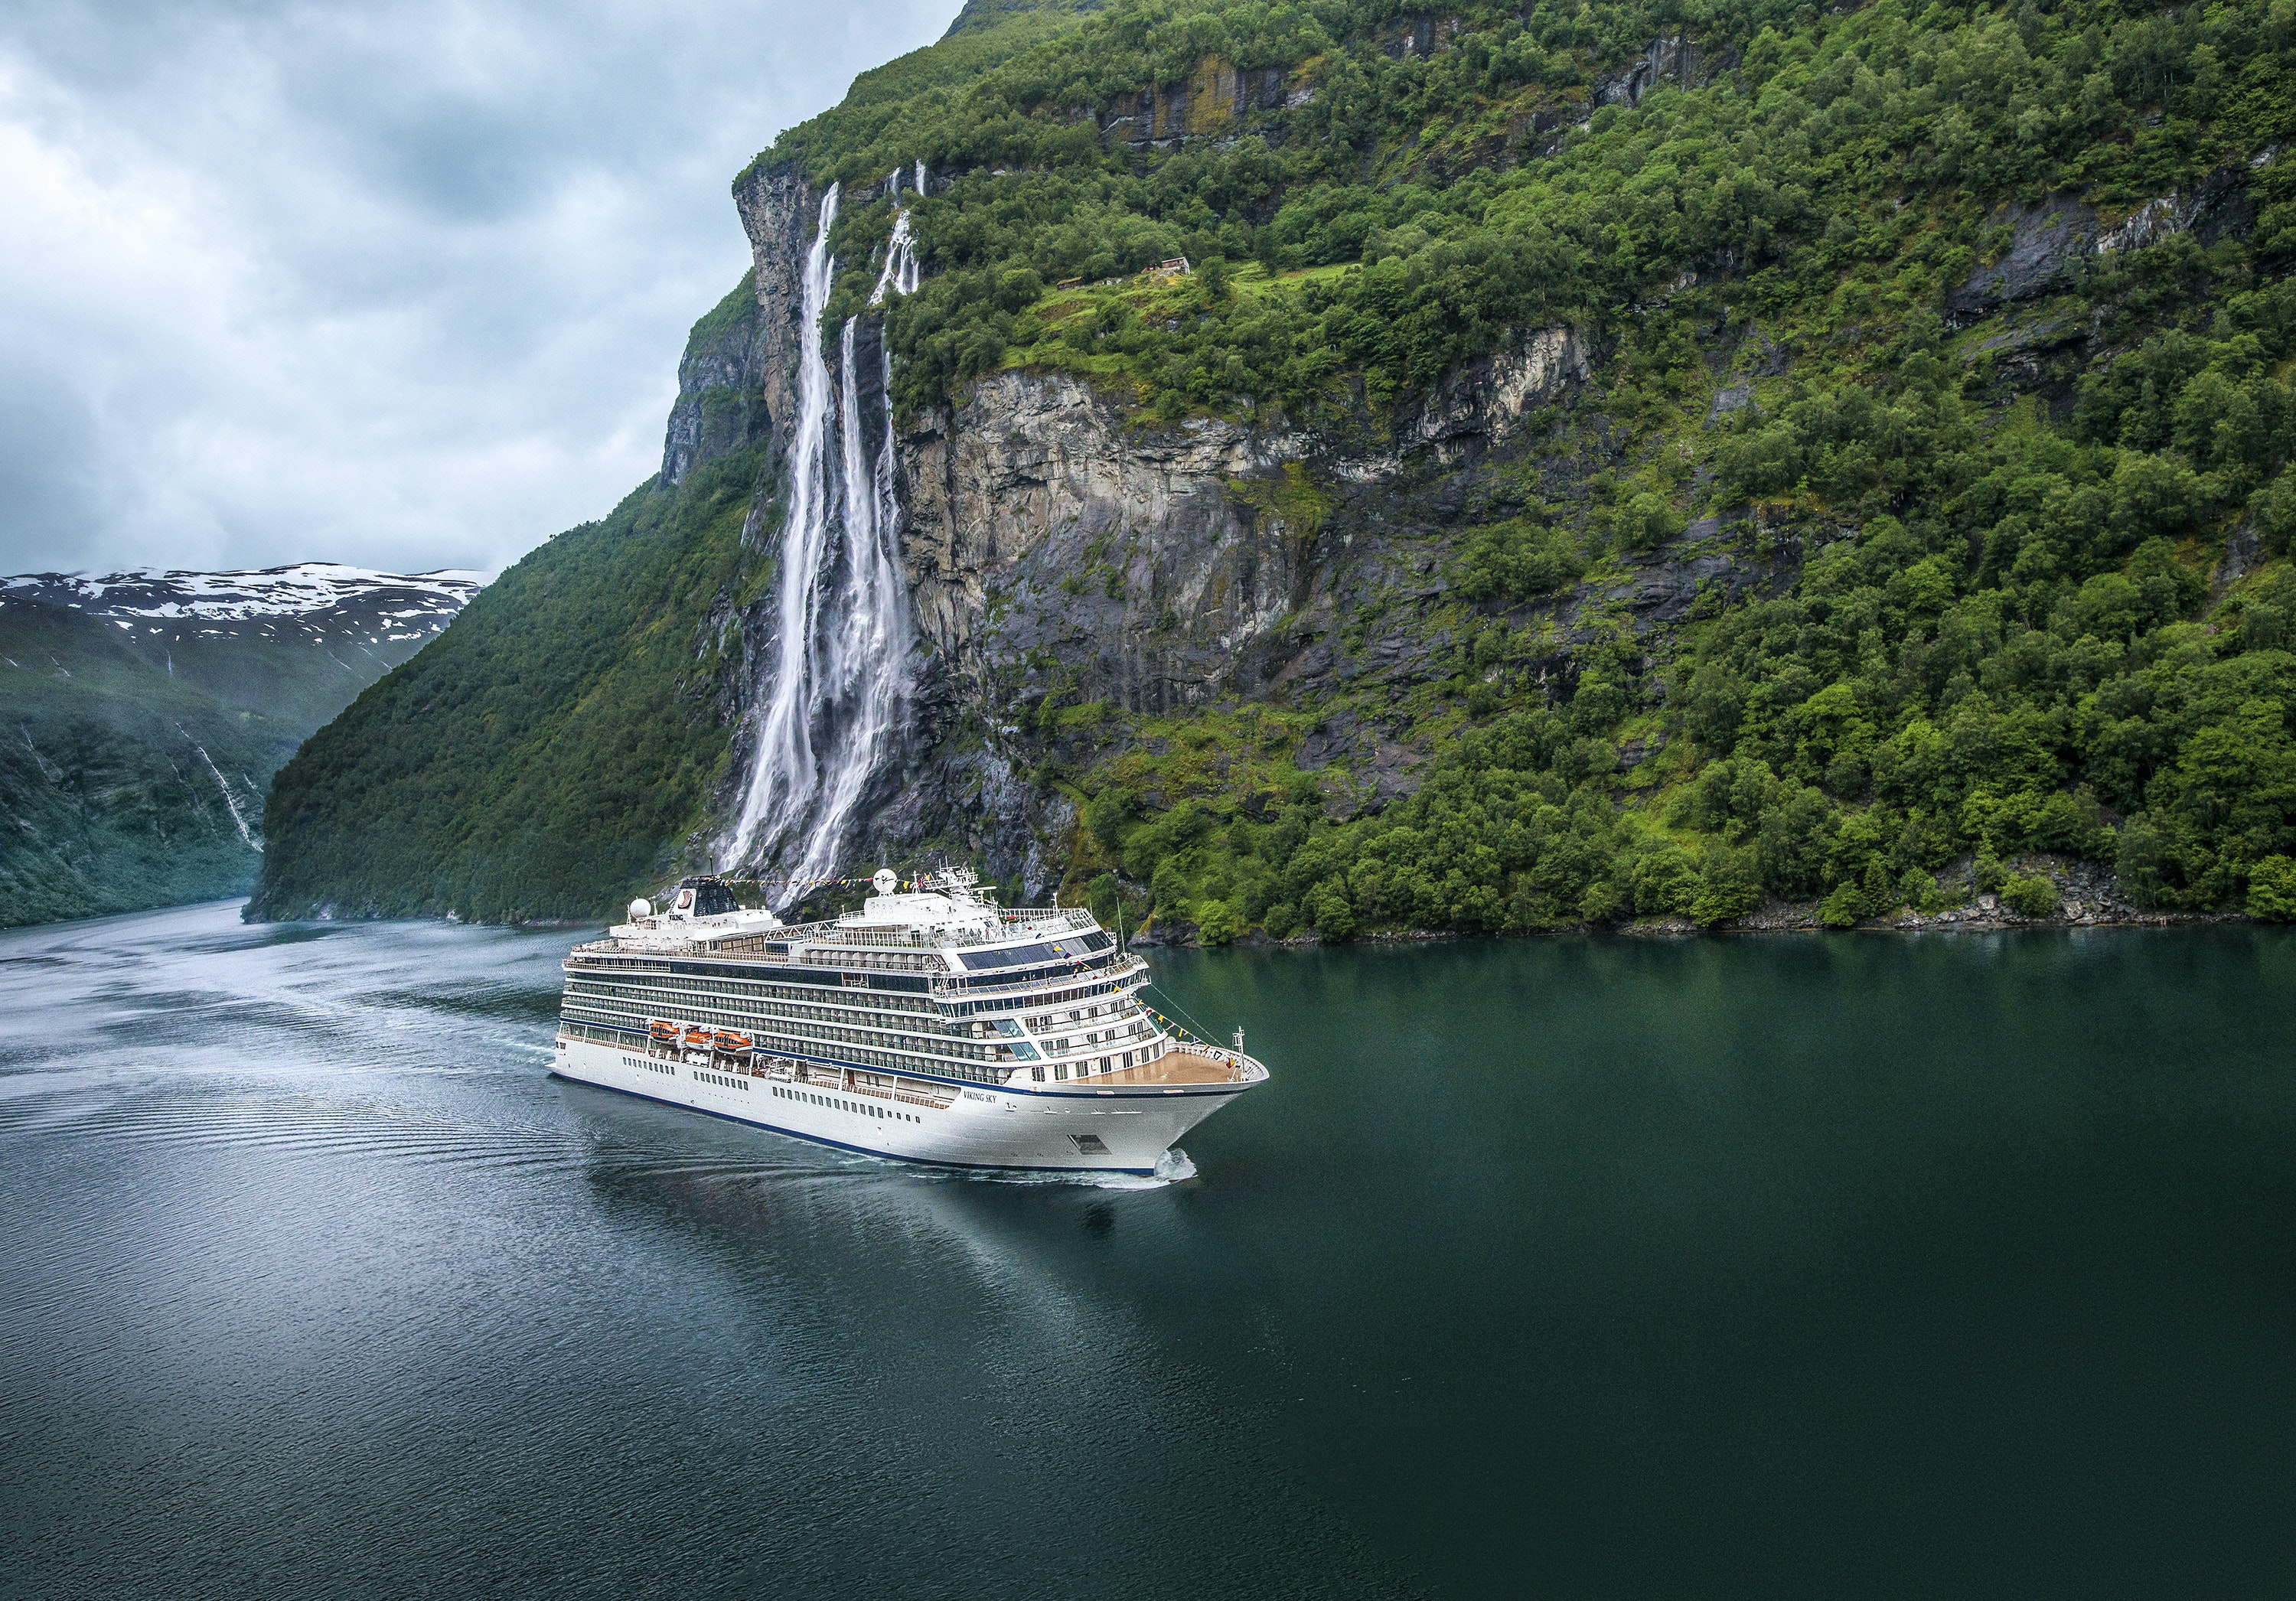 Viking earns a hat trick by winning Best Northern Europe Cruise Line, too.